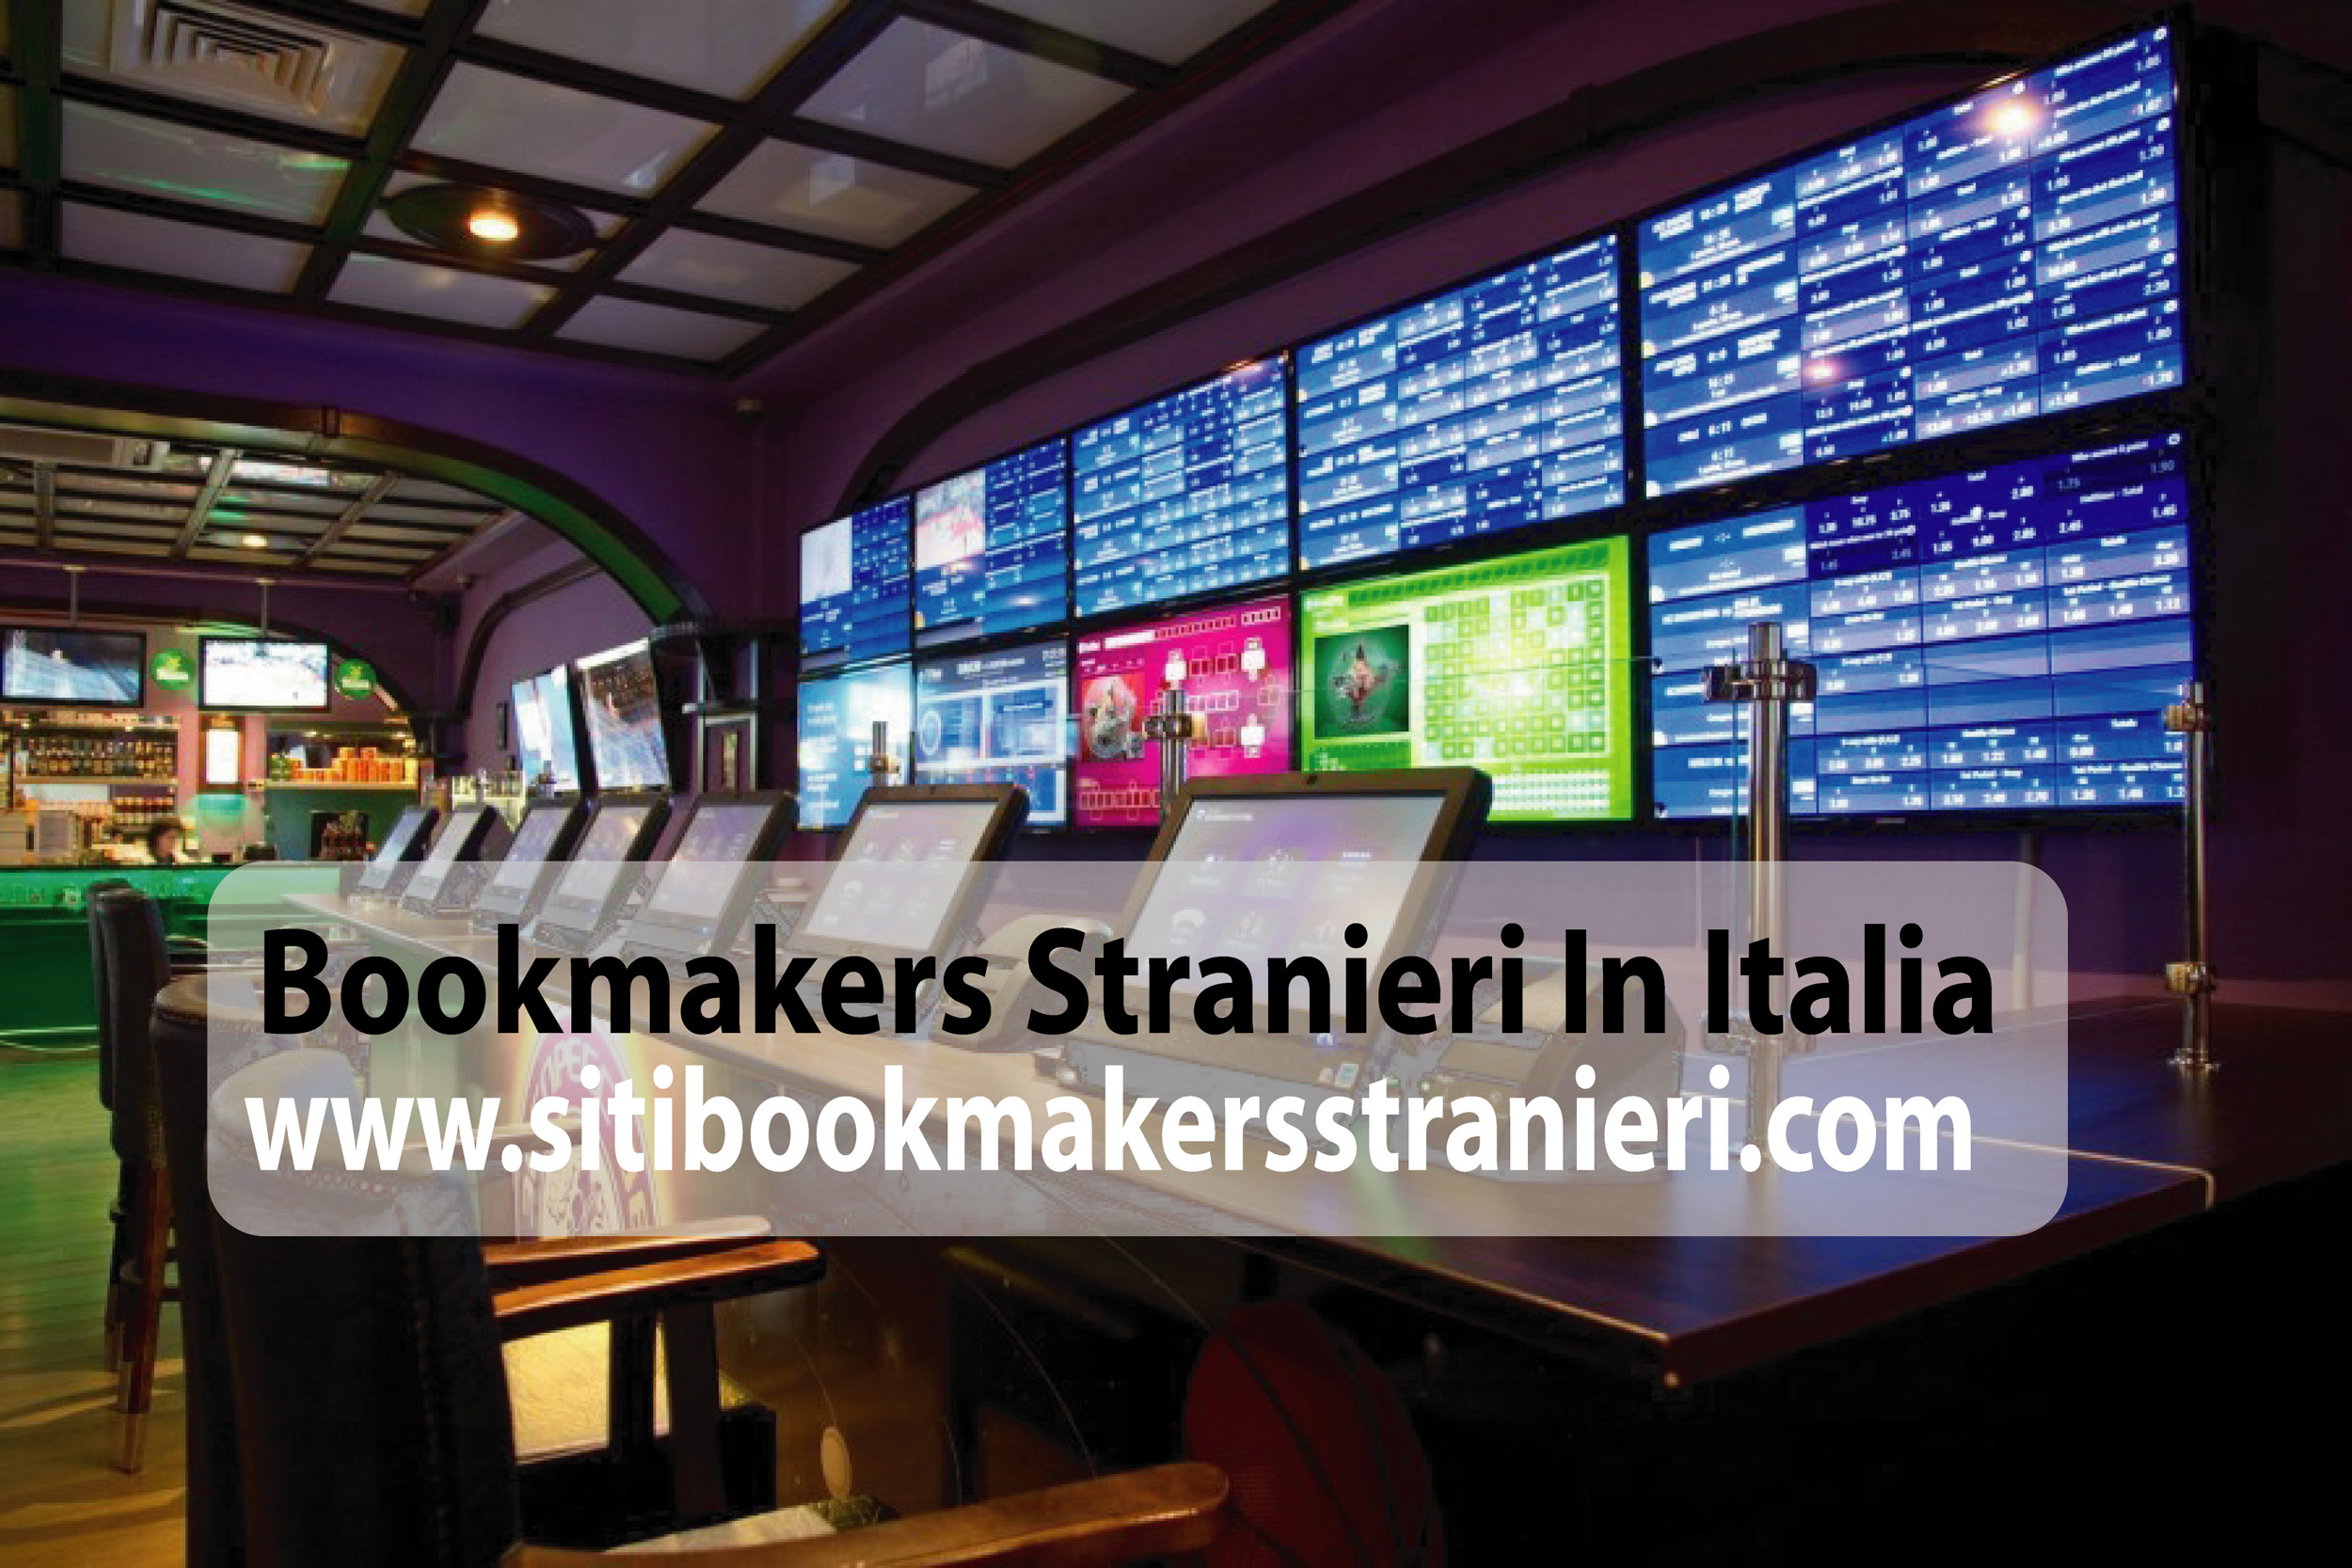 Introducing Bookmakers Stranieri in Italia